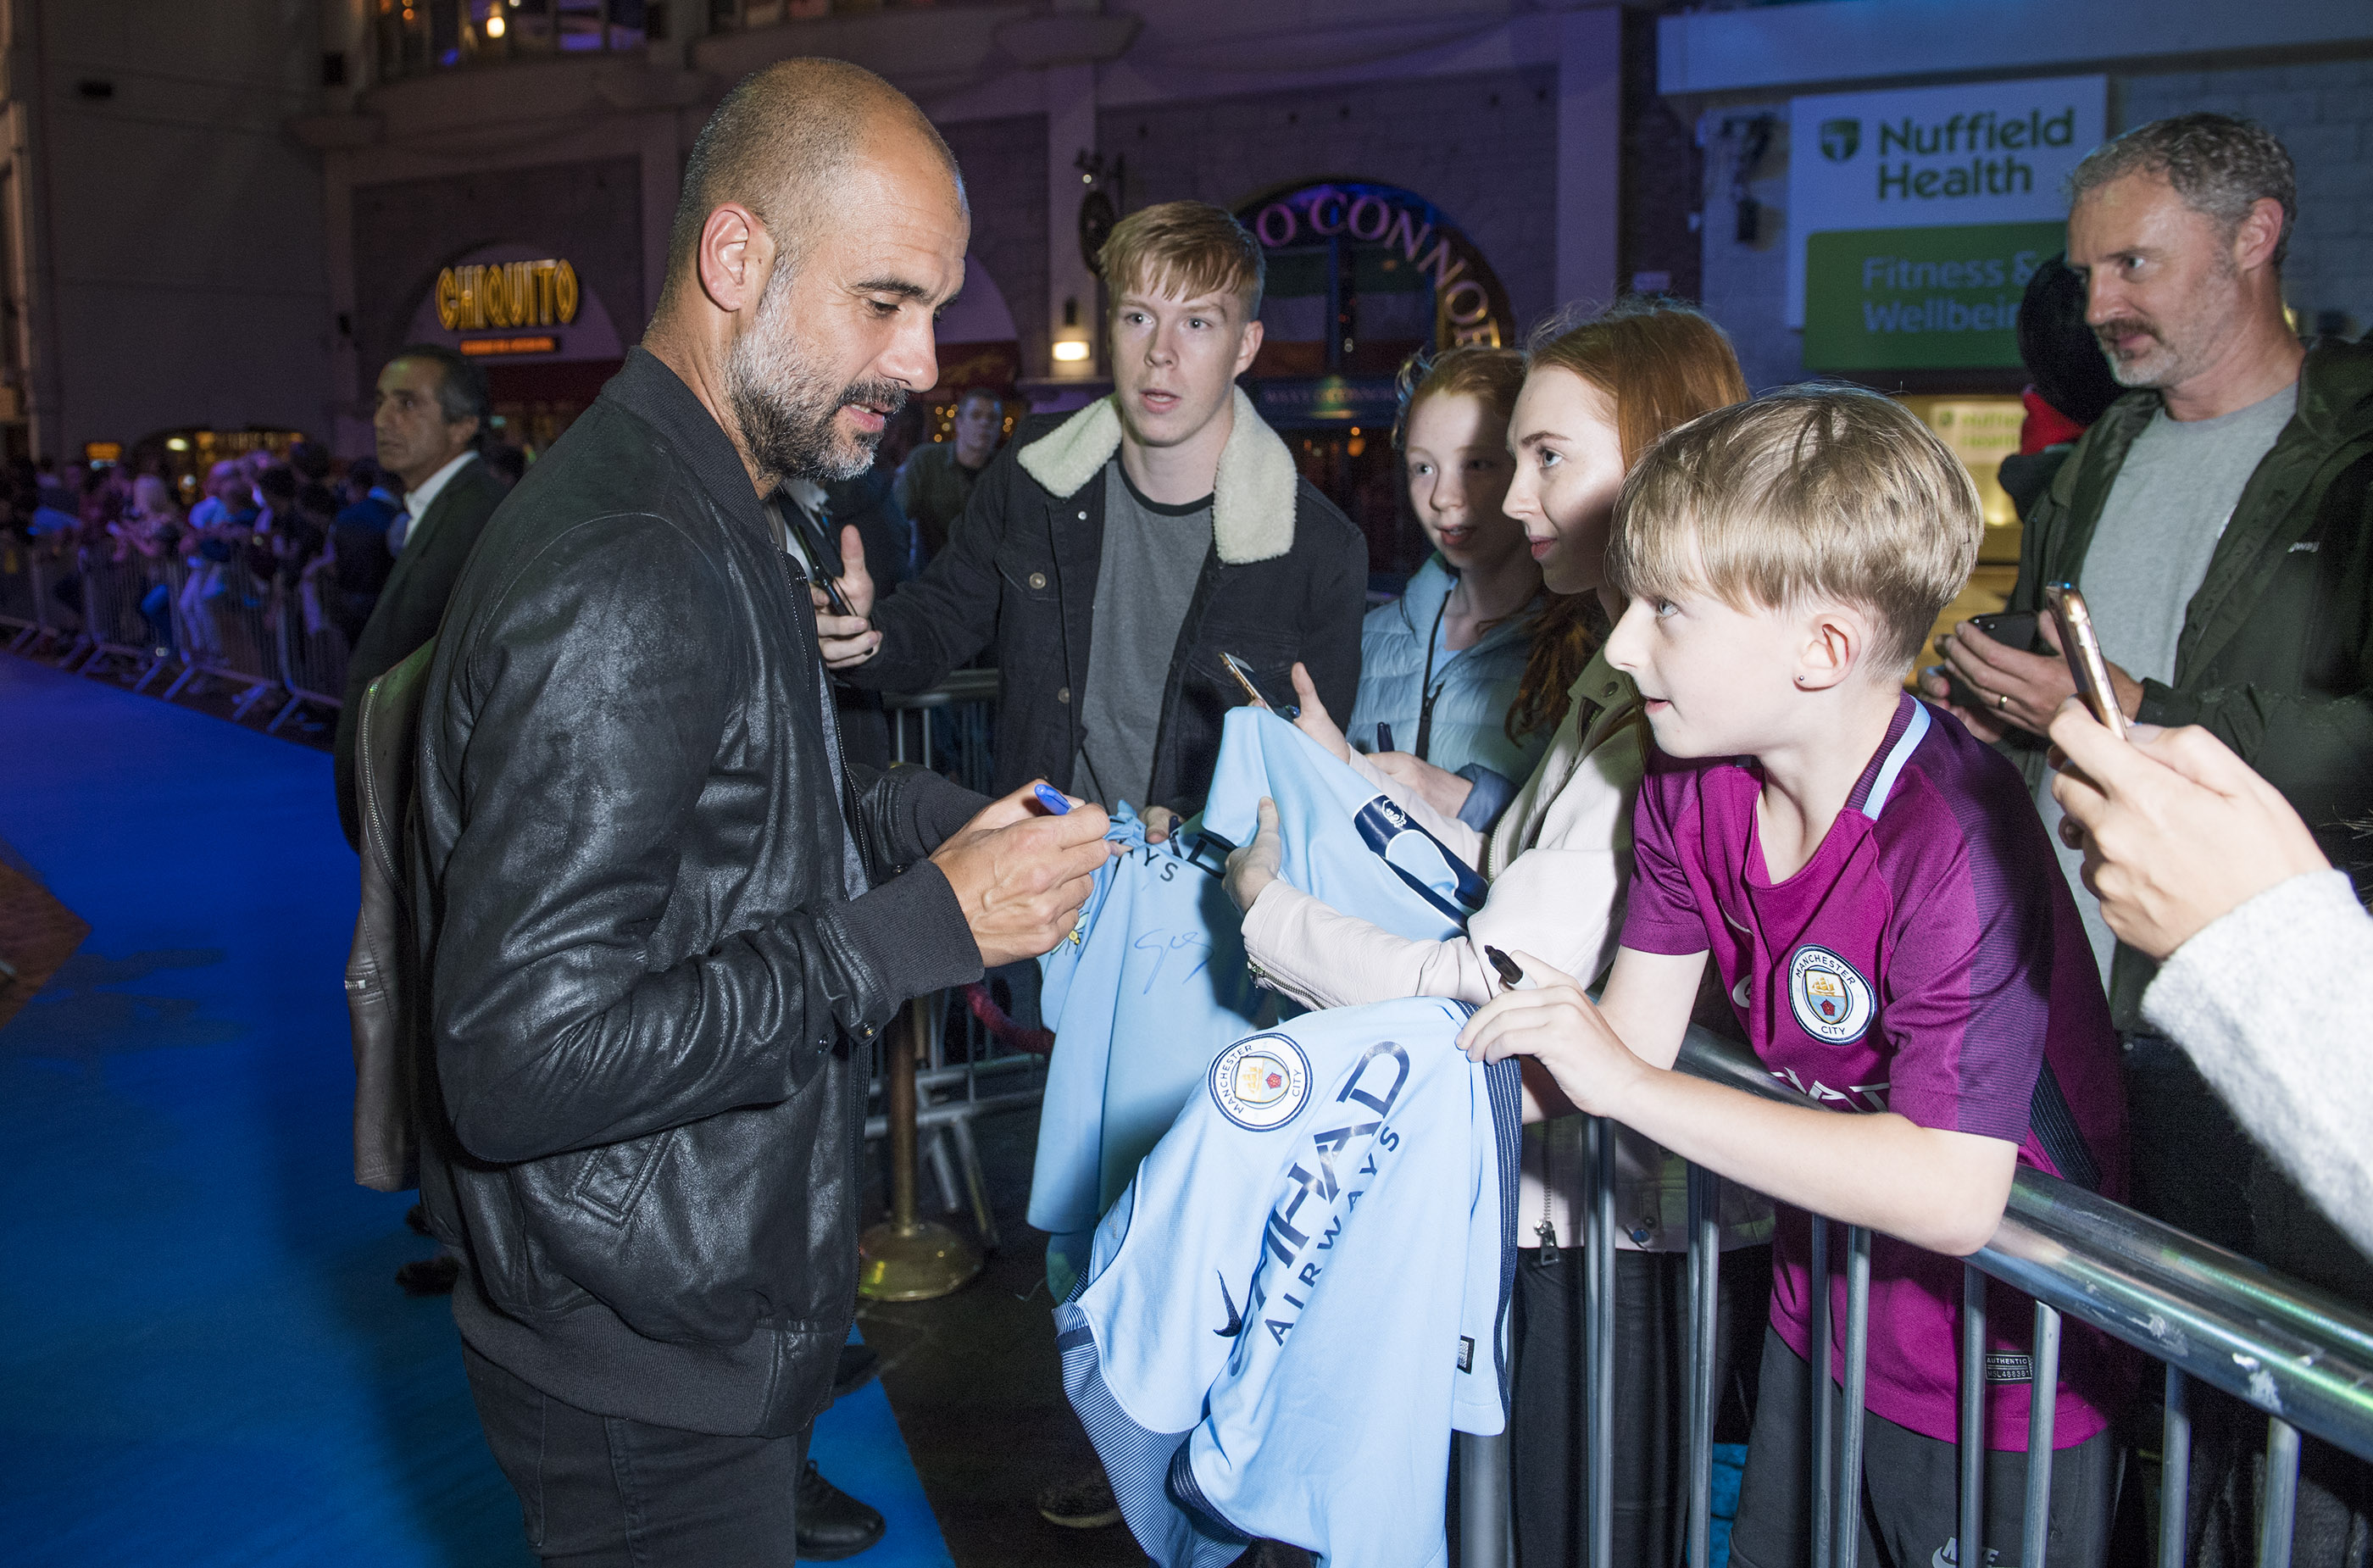 Manchester City v Huddersfield: David Silva's baby steals show as City mascot